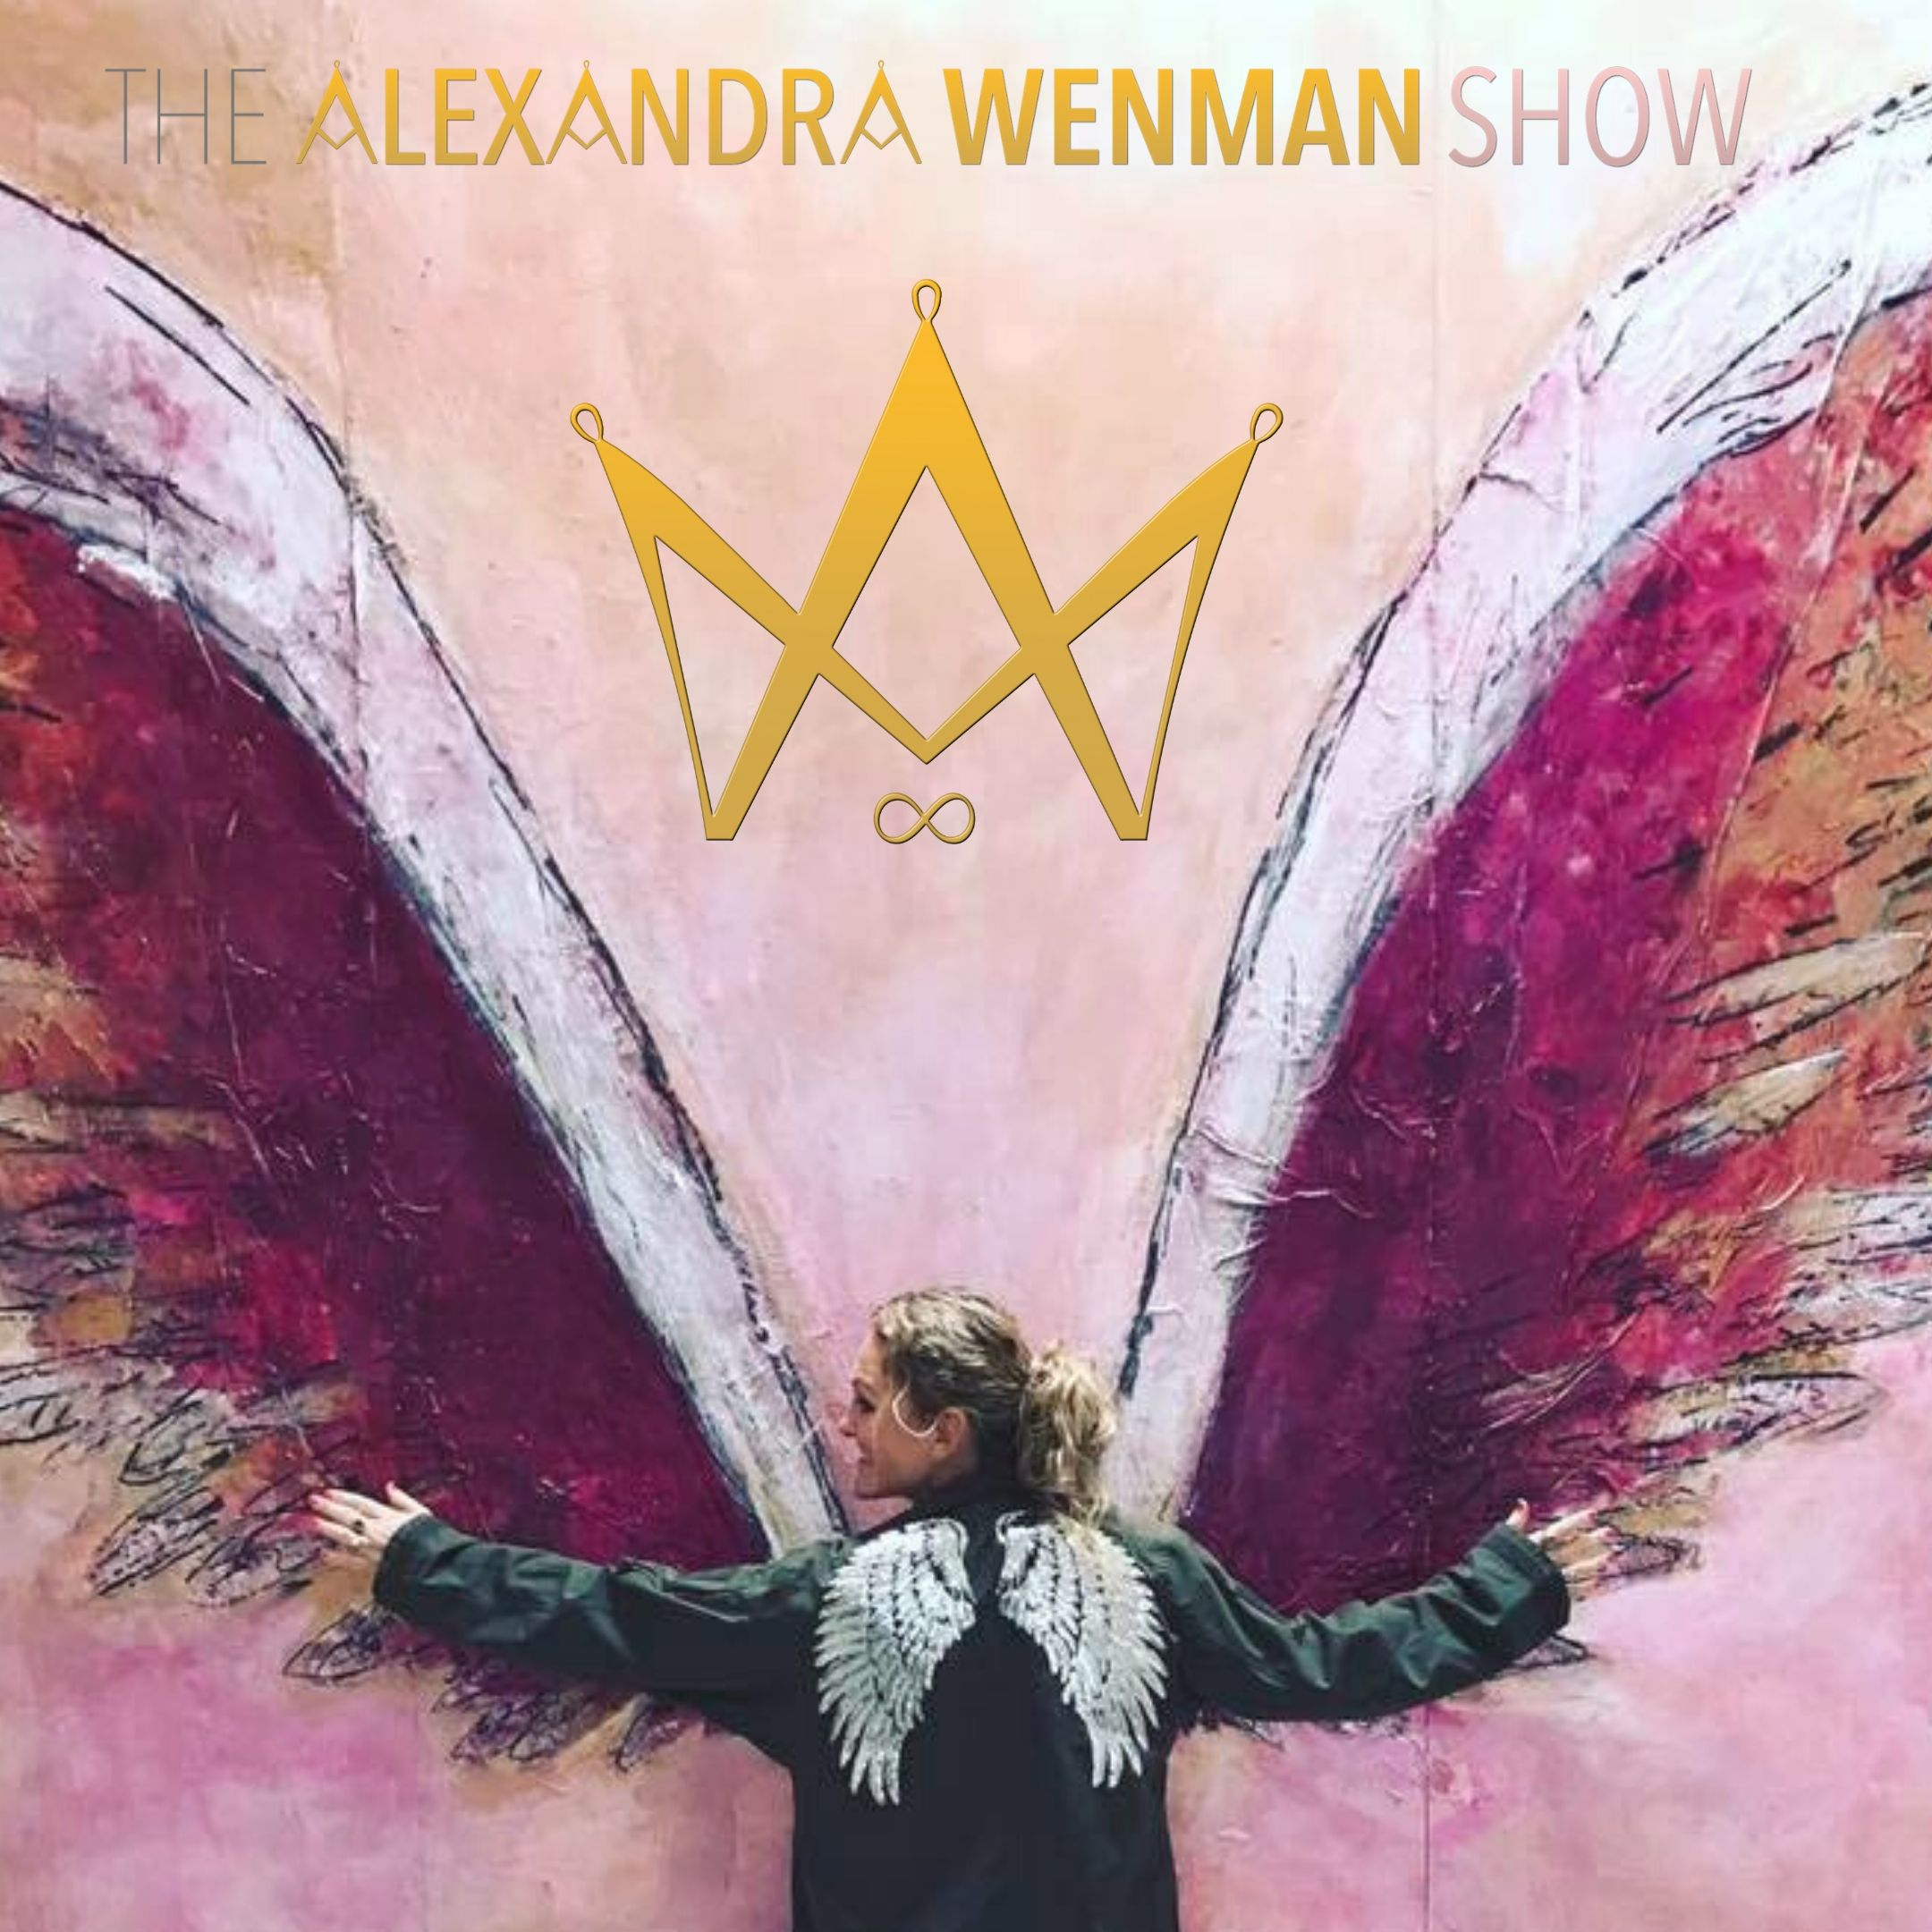 The Alexandra Wenman Show